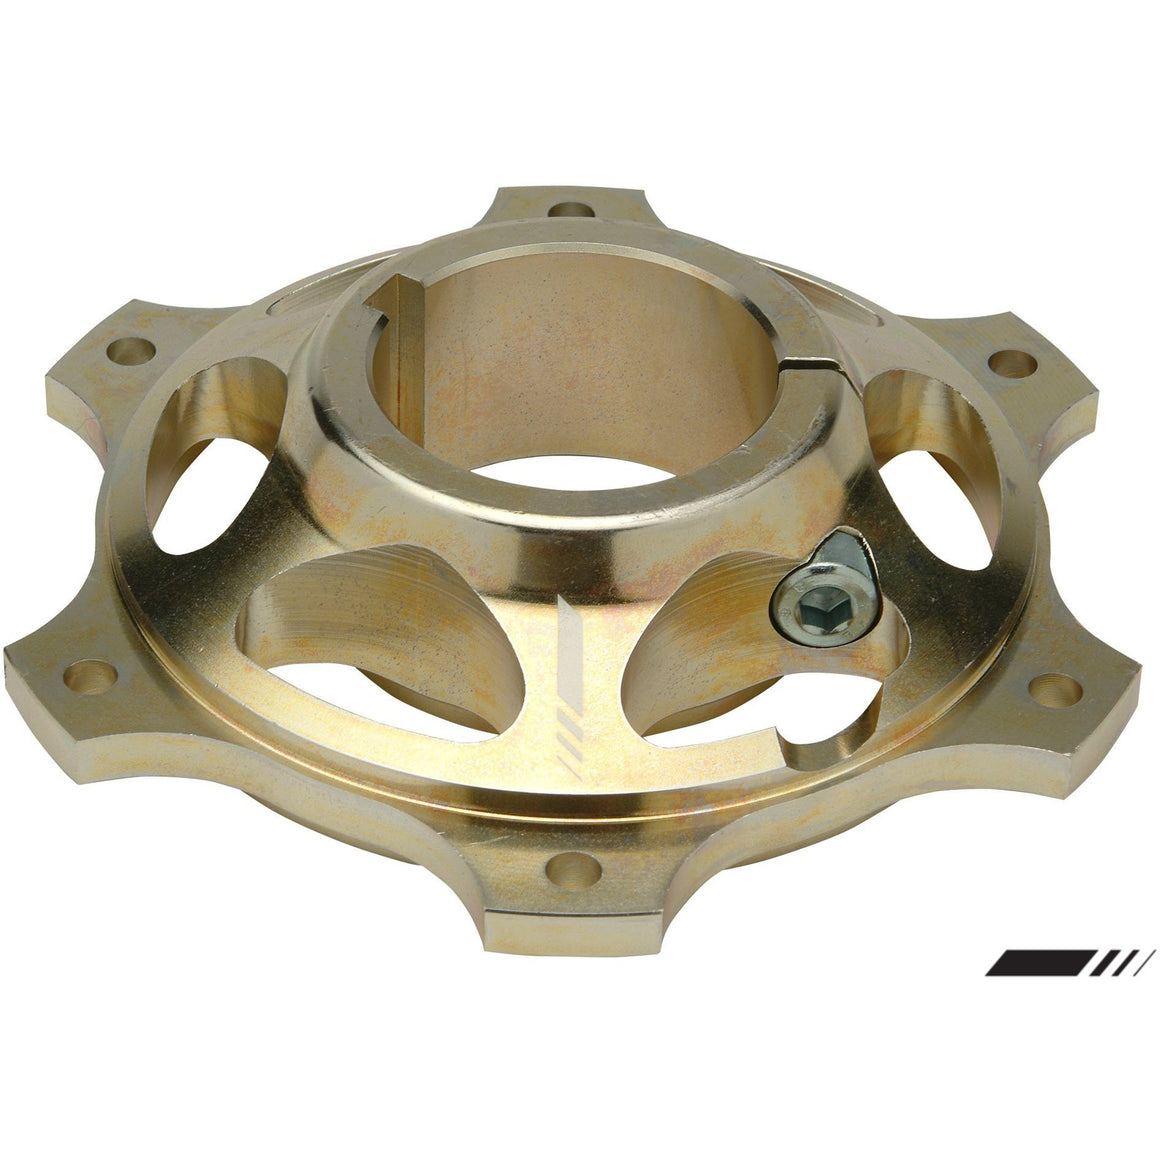 Compkart 50mm Magnesium Sprocket Hub